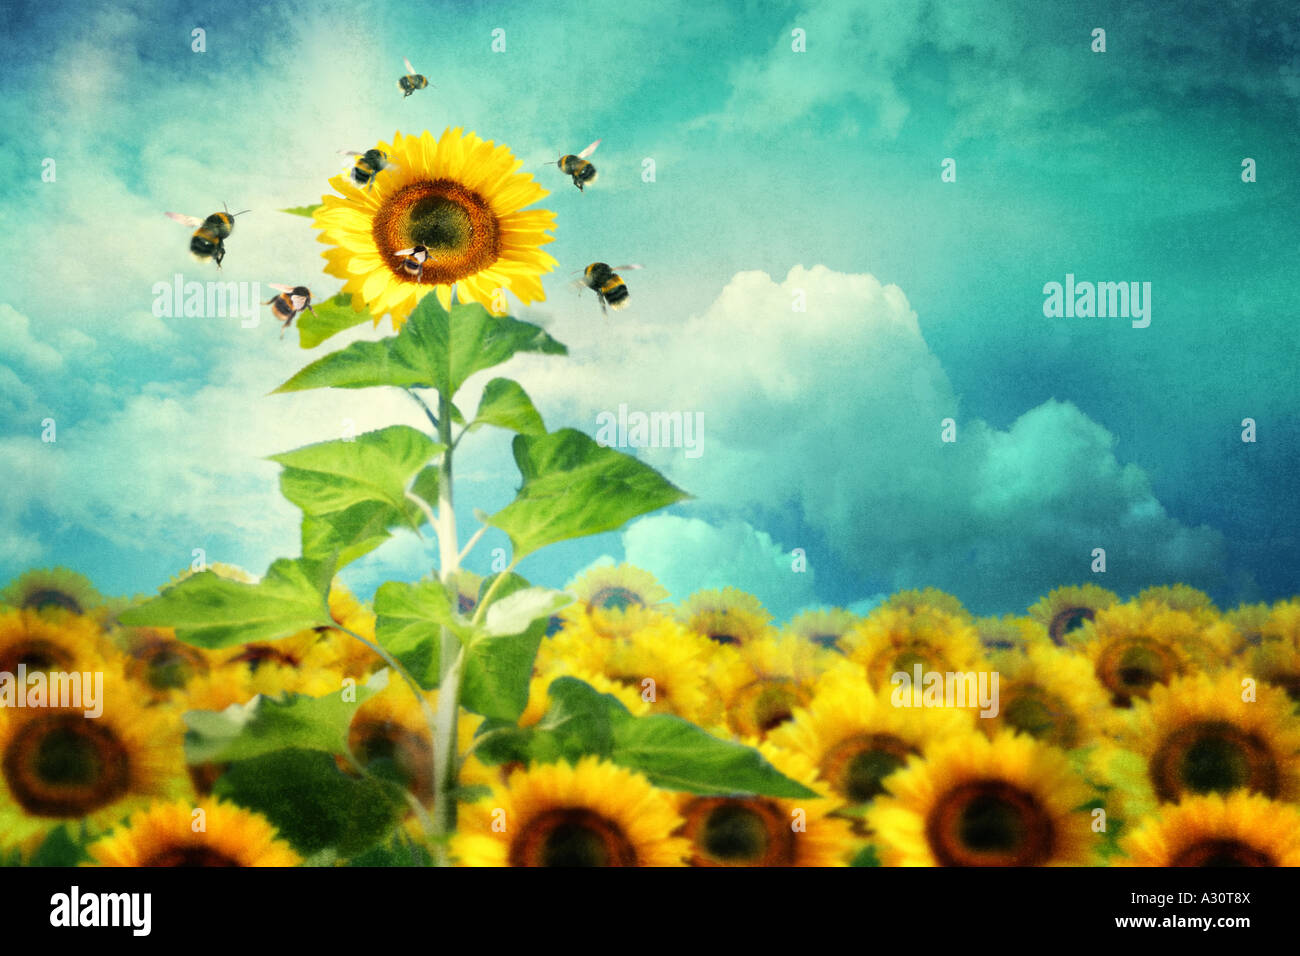 concept image of a tall sunflower standing out and attracting more bees Stock Photo